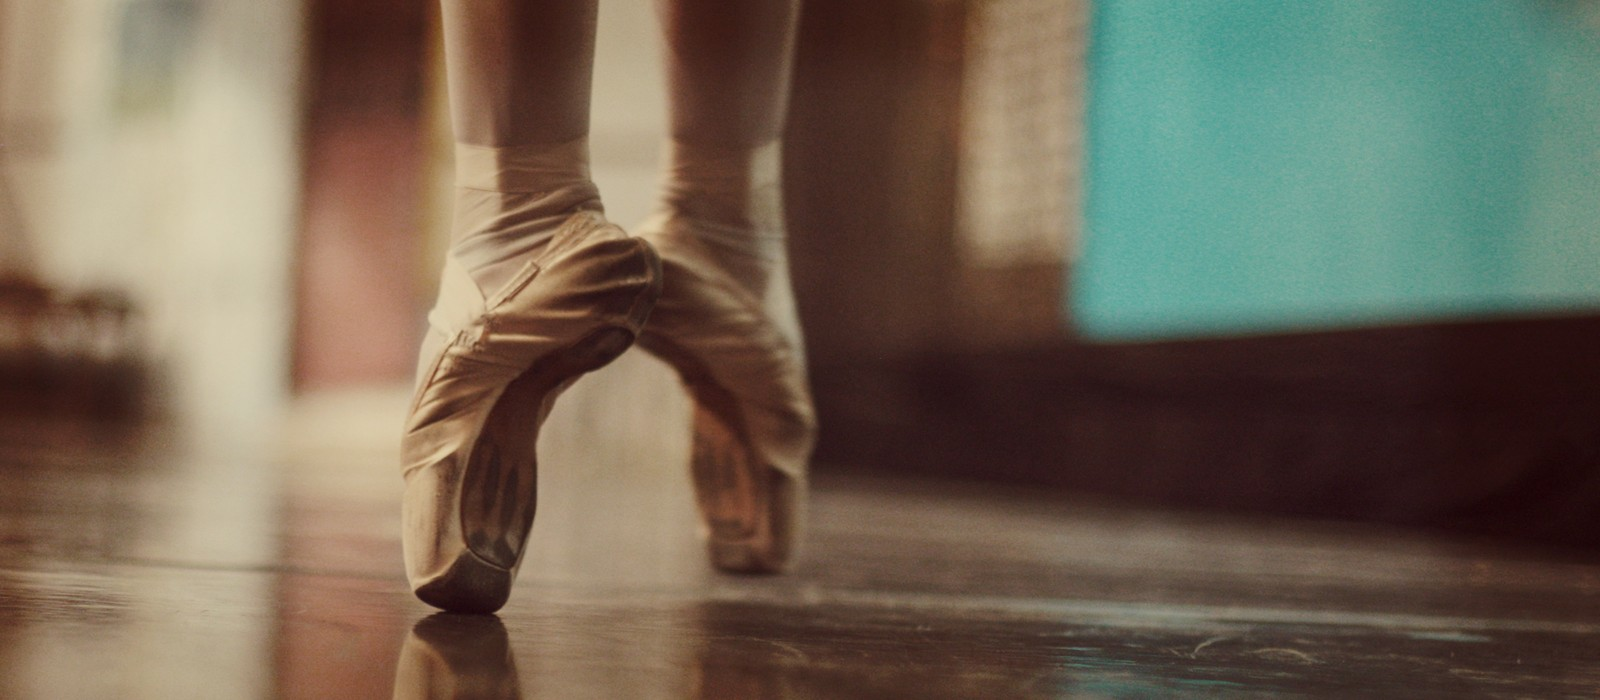 On Pointe with a Shoestring Budget